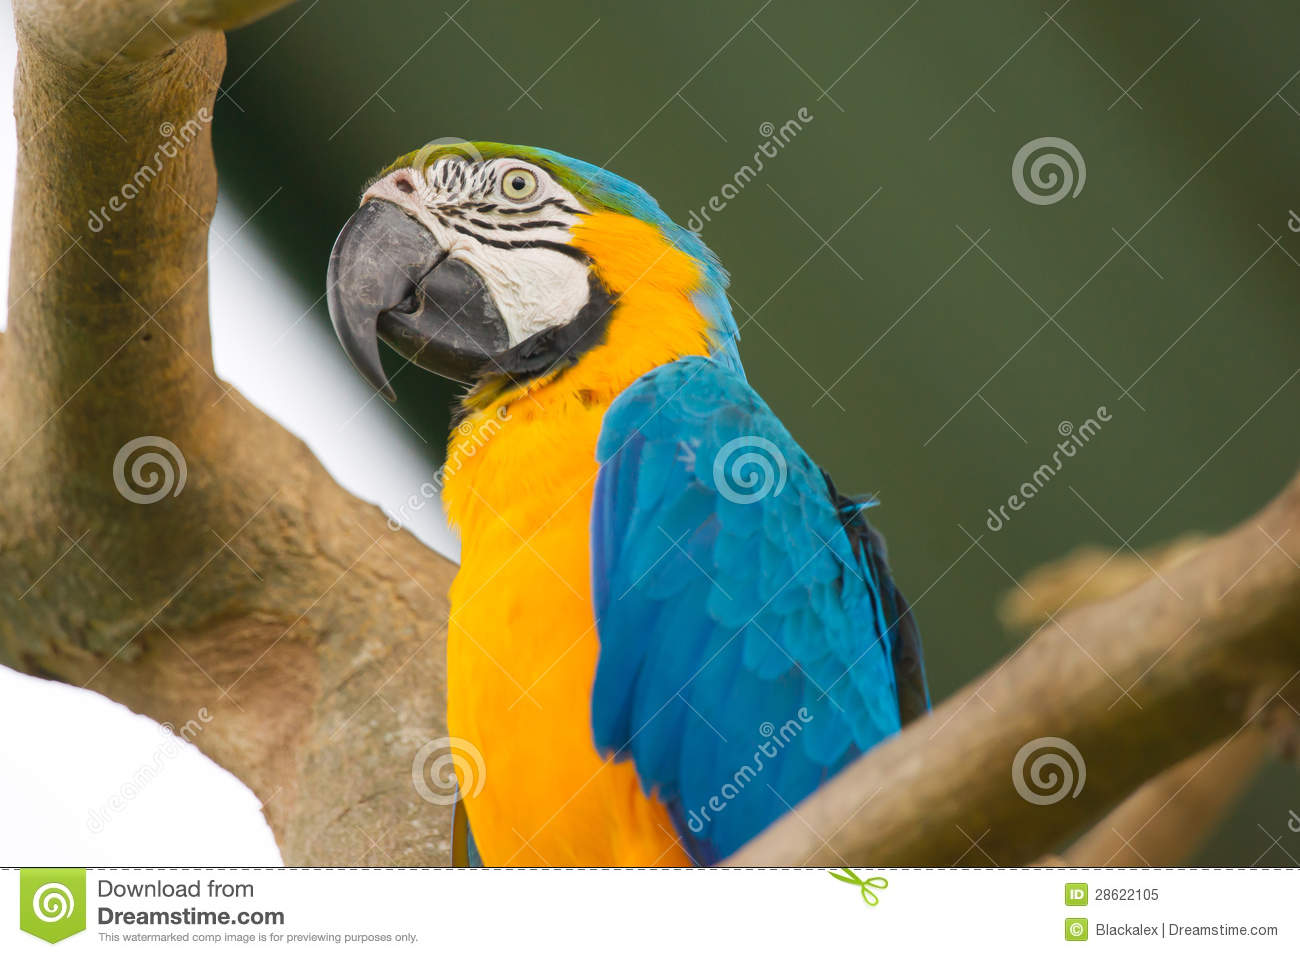 Blue, White and Yellow Macaw